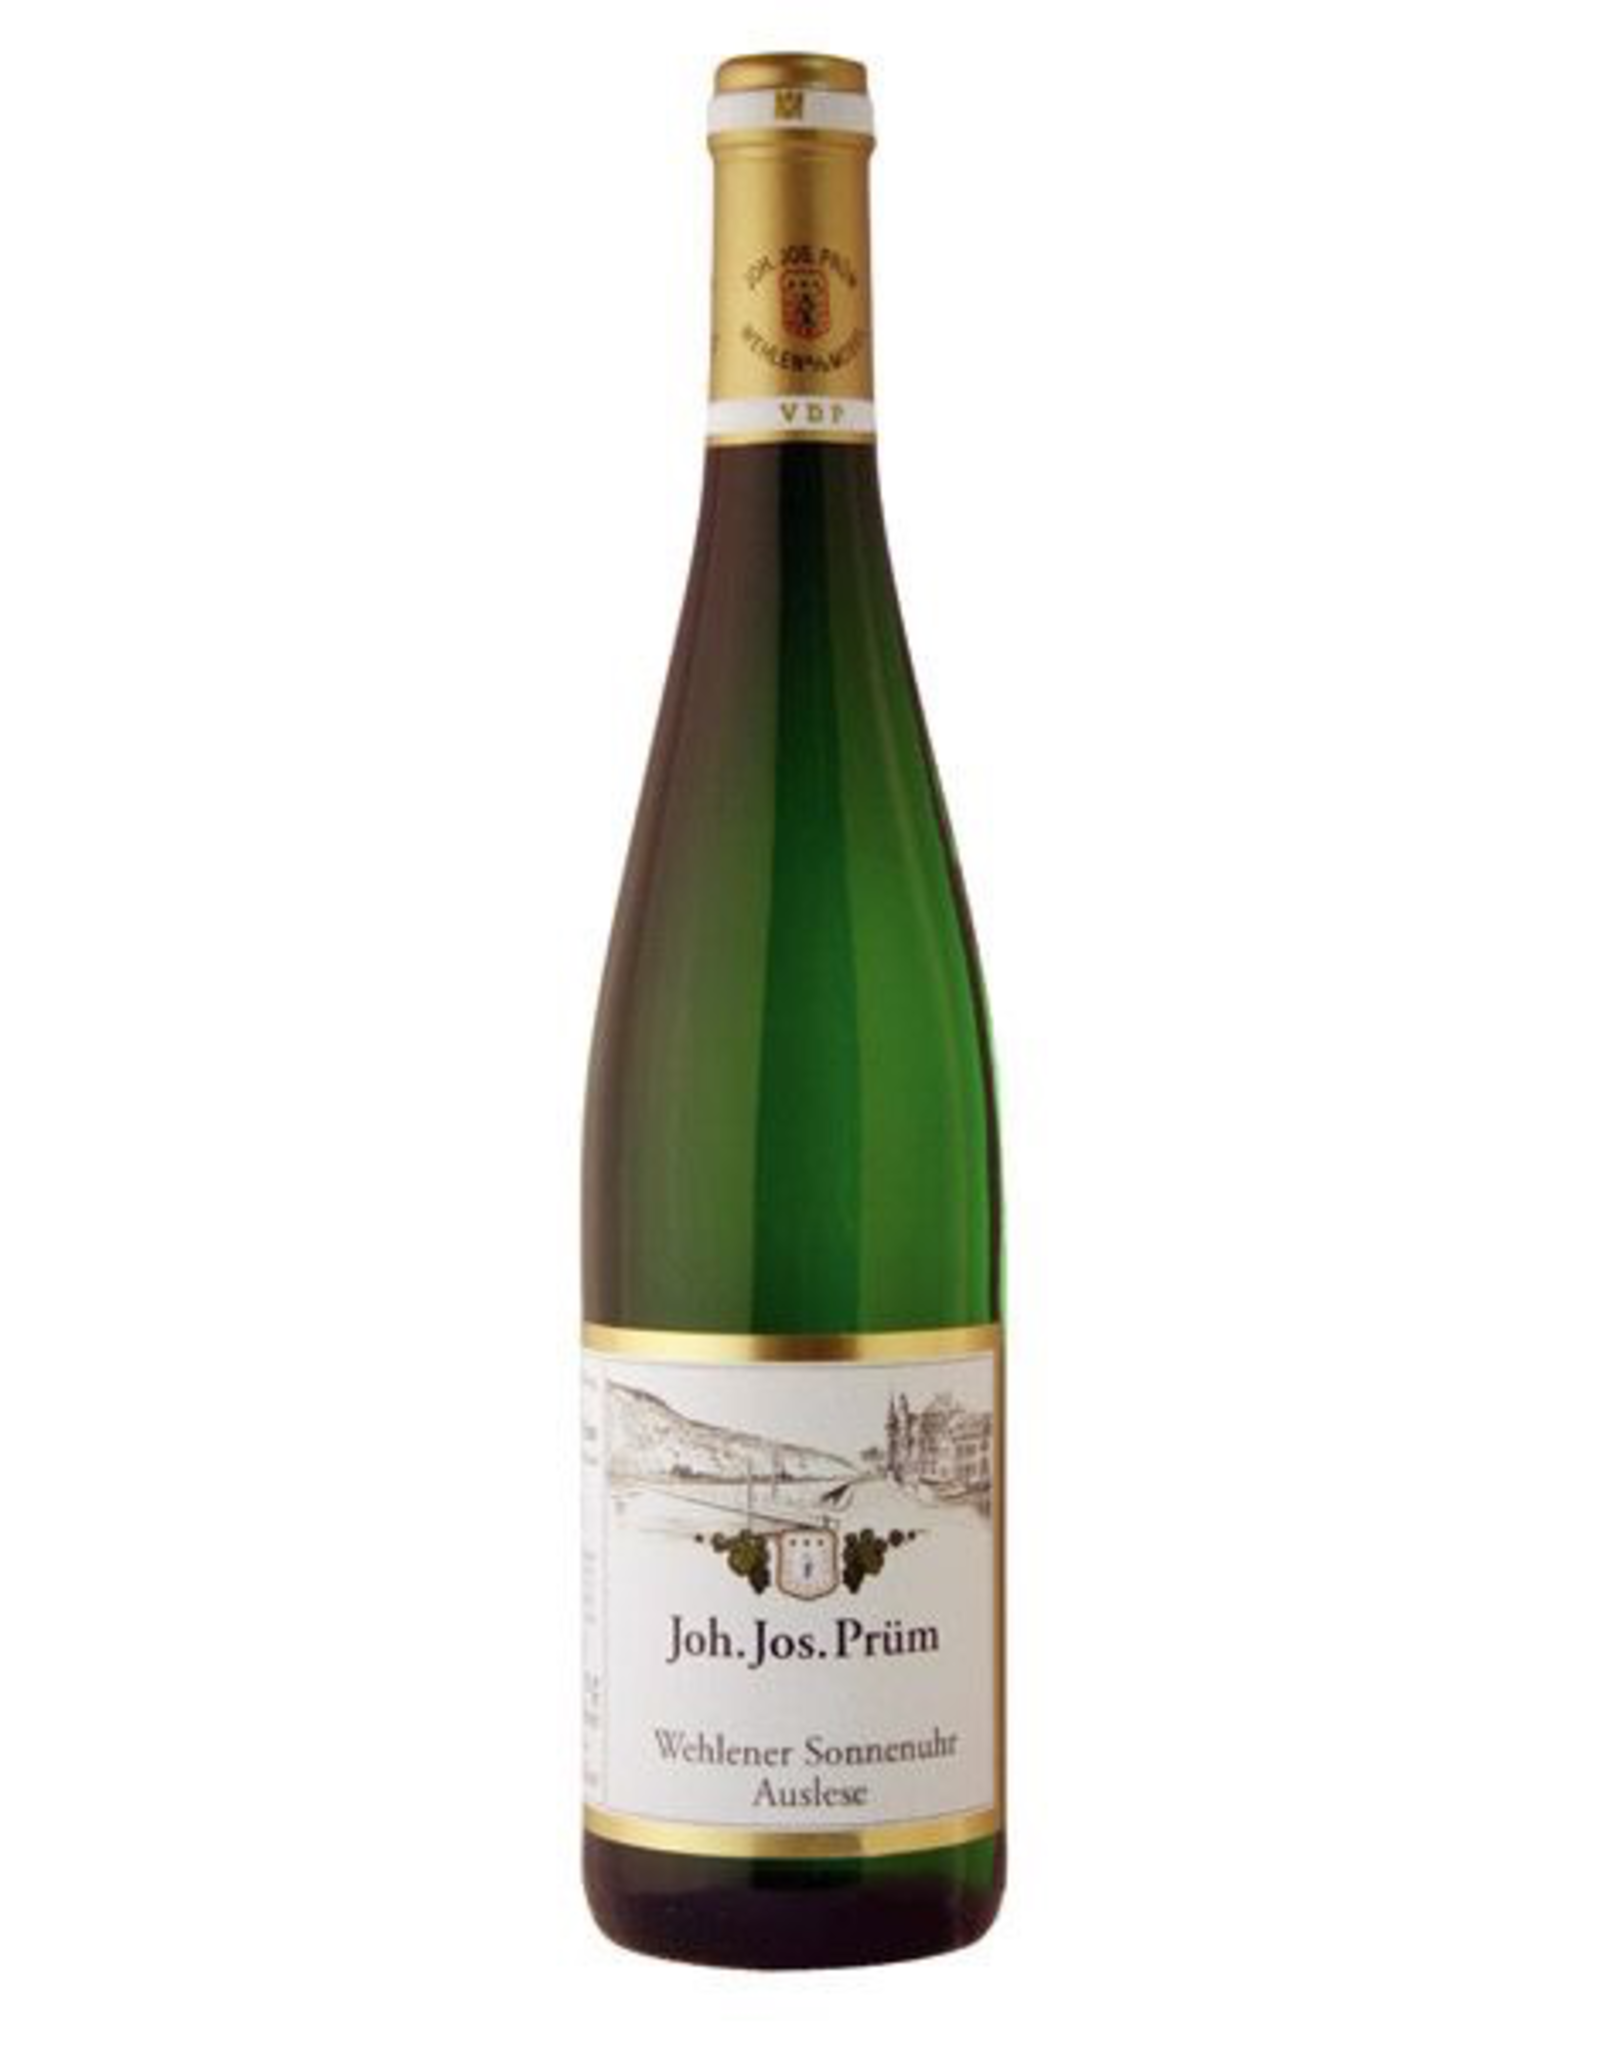 White Wine 1999, Joh. Jos. Prum Wehlener Sonnenuhr GOLD CAP 750ml Auslese, Riesling, Graacher Himmelreich, Mosel, Germany, 7.5% Alc, CT93.7